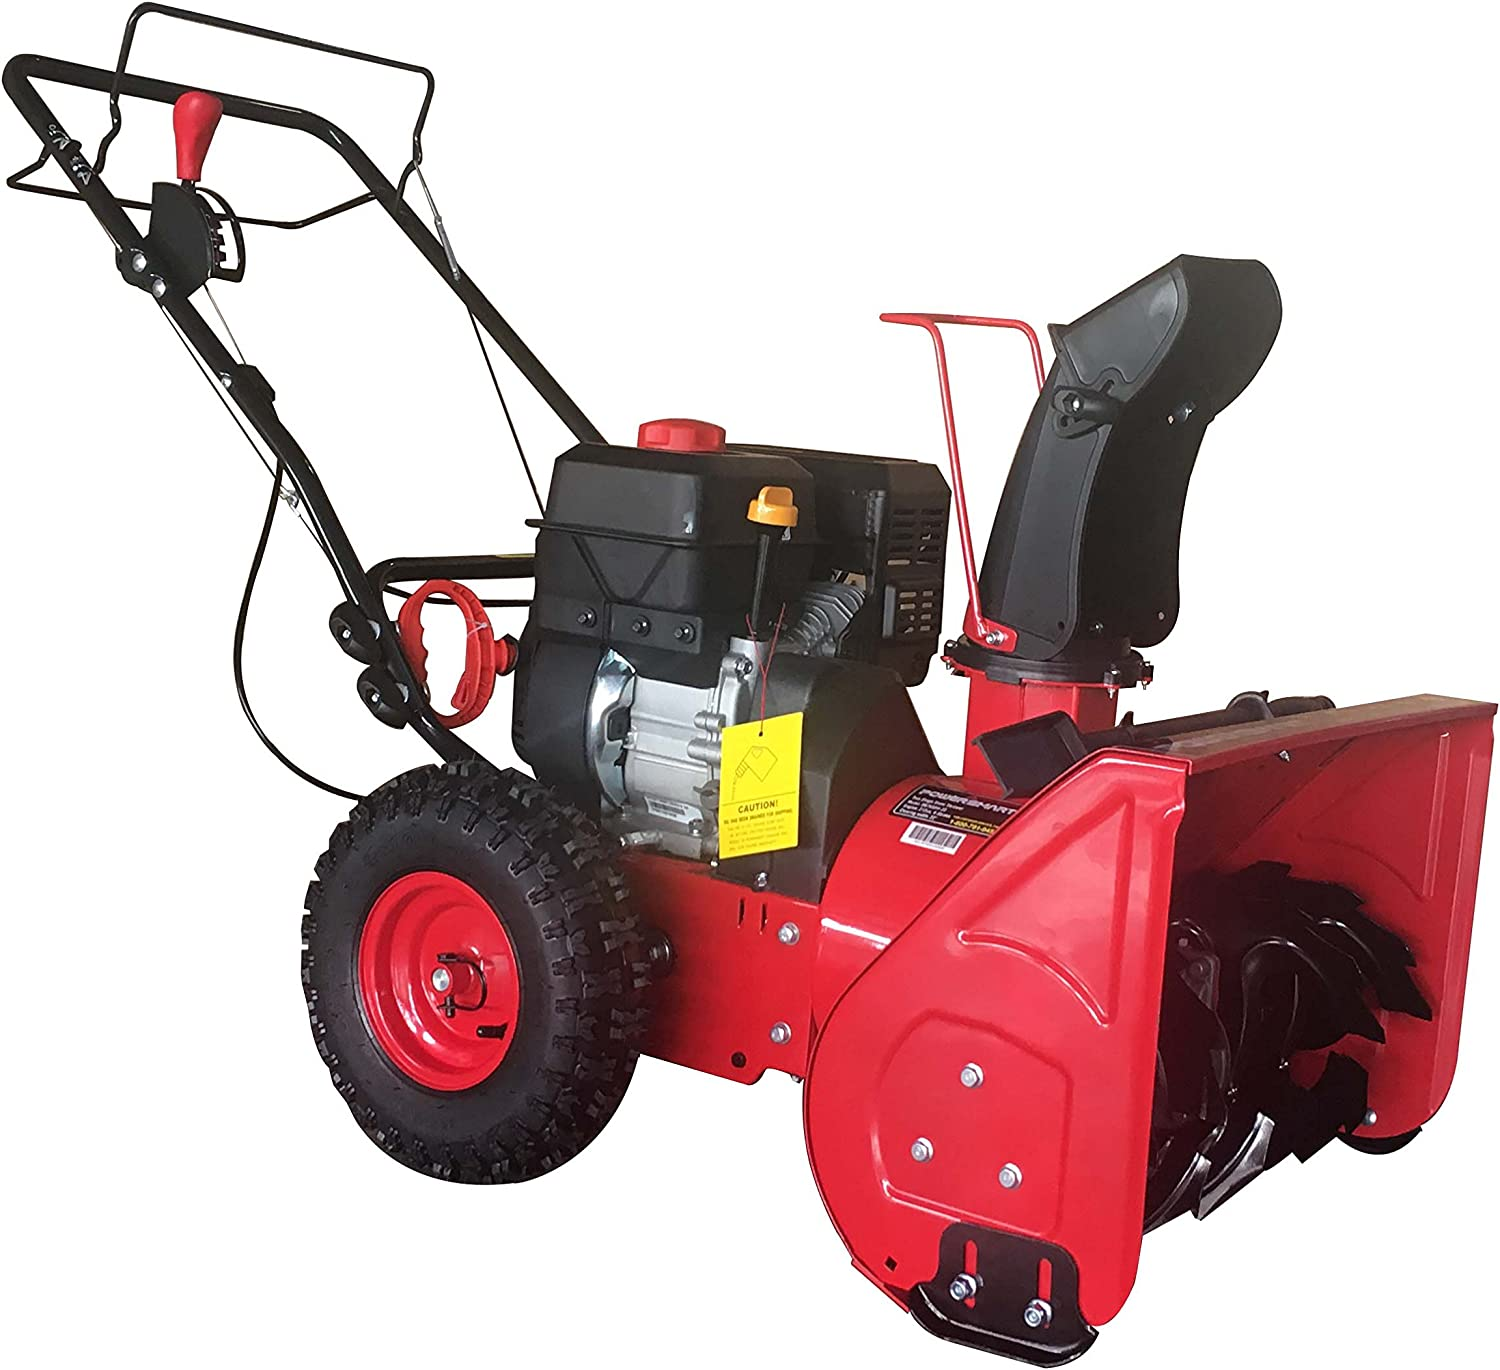 PowerSmart DB7622H Gas Snow Thrower